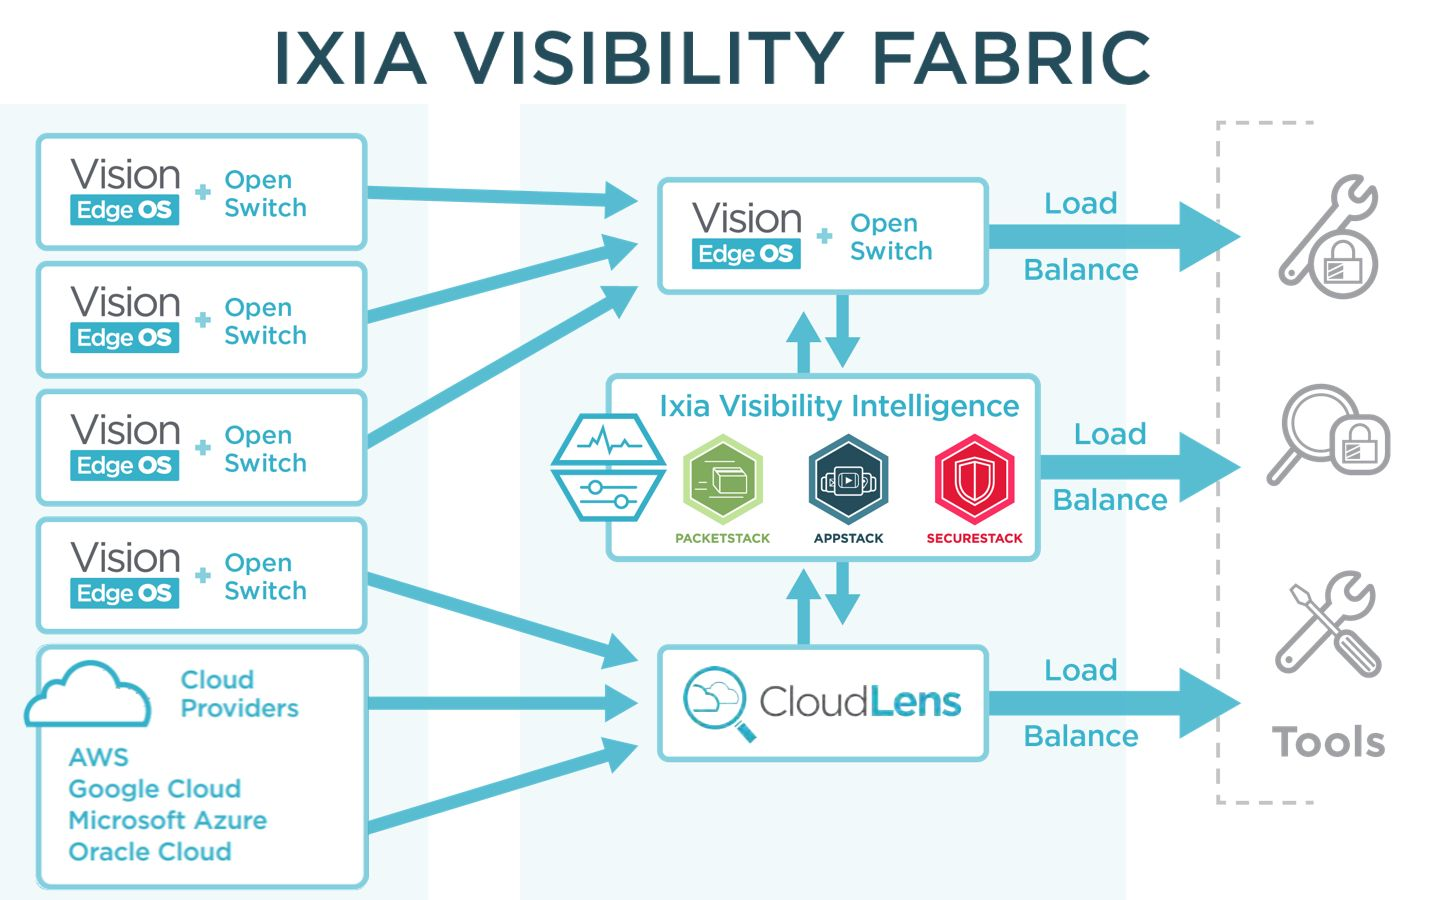 Ixia Visibility Fabric Diagram